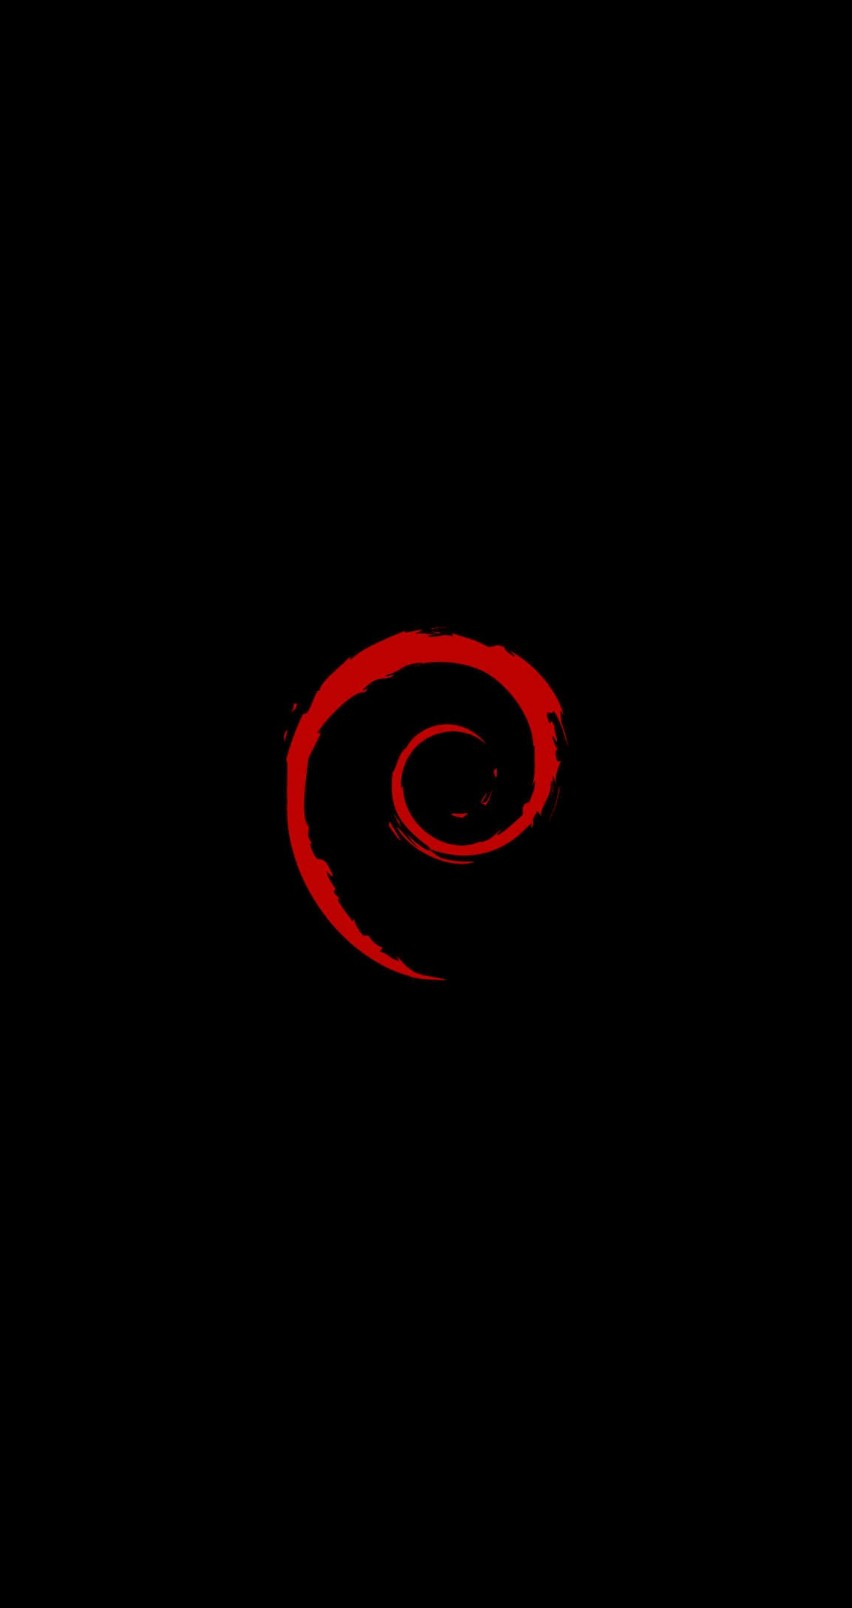 Linux Debian Wallpaper for Apple iPhone 6 / 6s